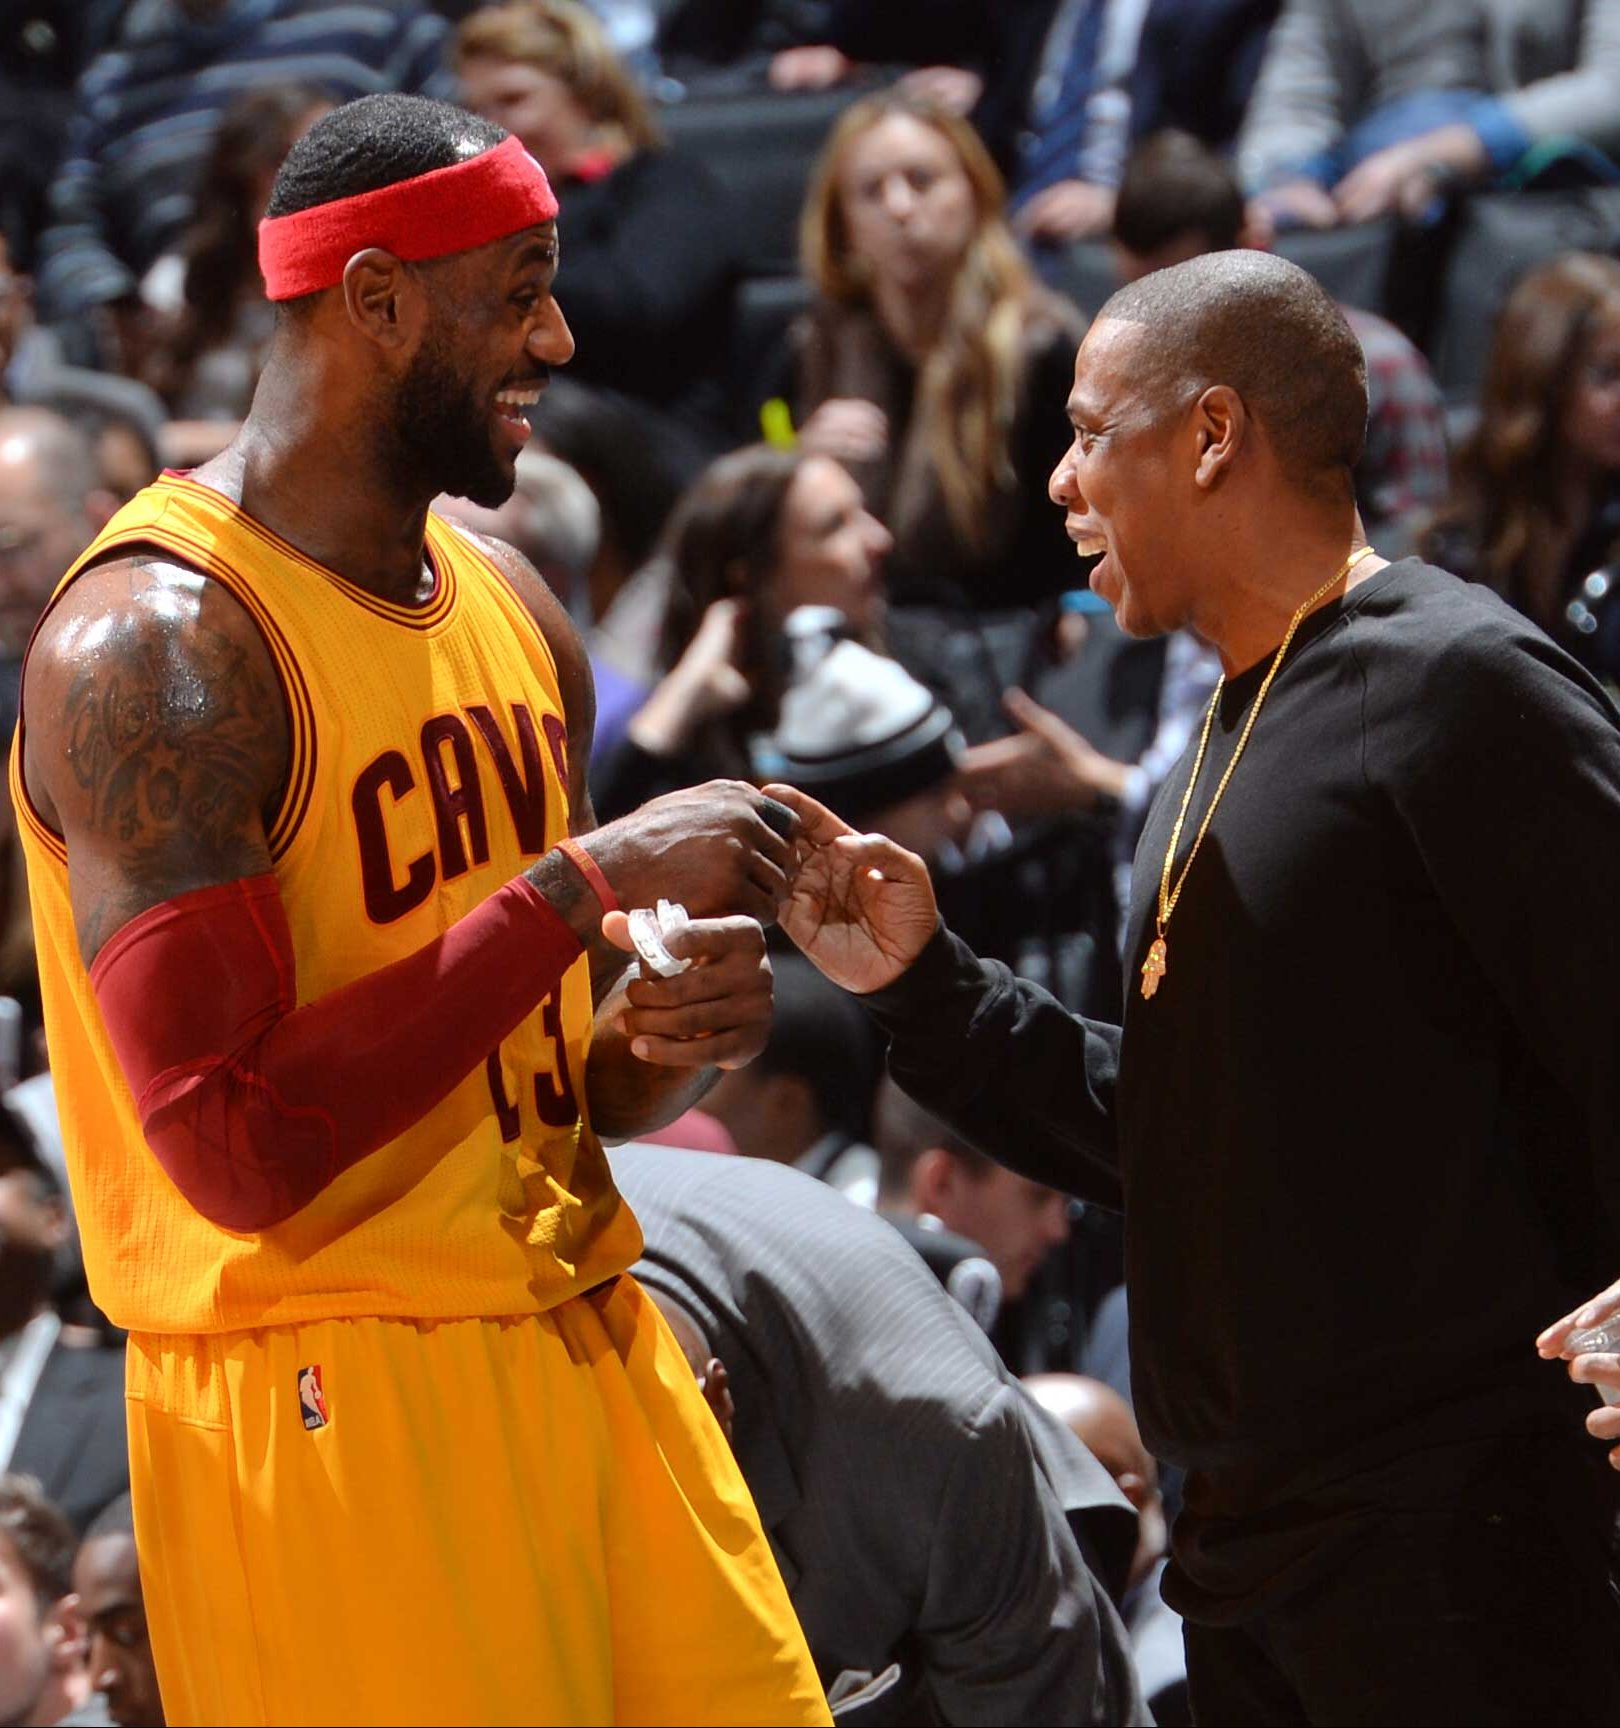 aef17a4b39b2 LeBron James  23 of the Cleveland Cavaliers shakes hands with Jay-Z during  the game against the Brooklyn Nets on December 8